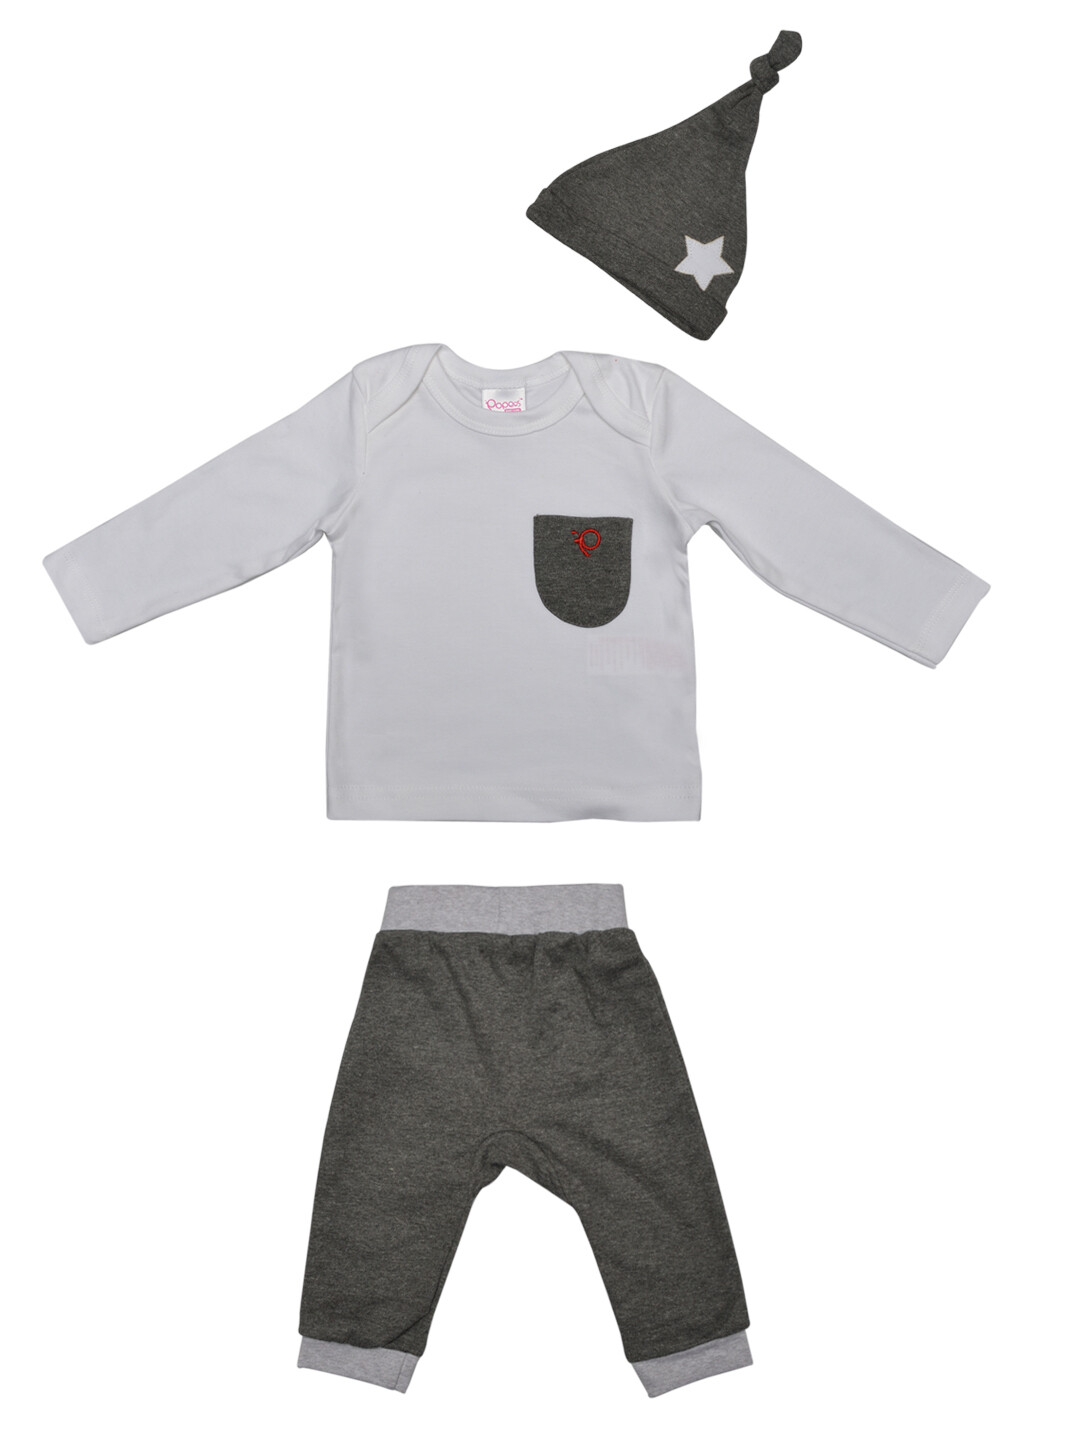 Melvin White Full Sleeves Round Neck T-shirt with Lounge Pant and Knot Hat M (6-12 Months)